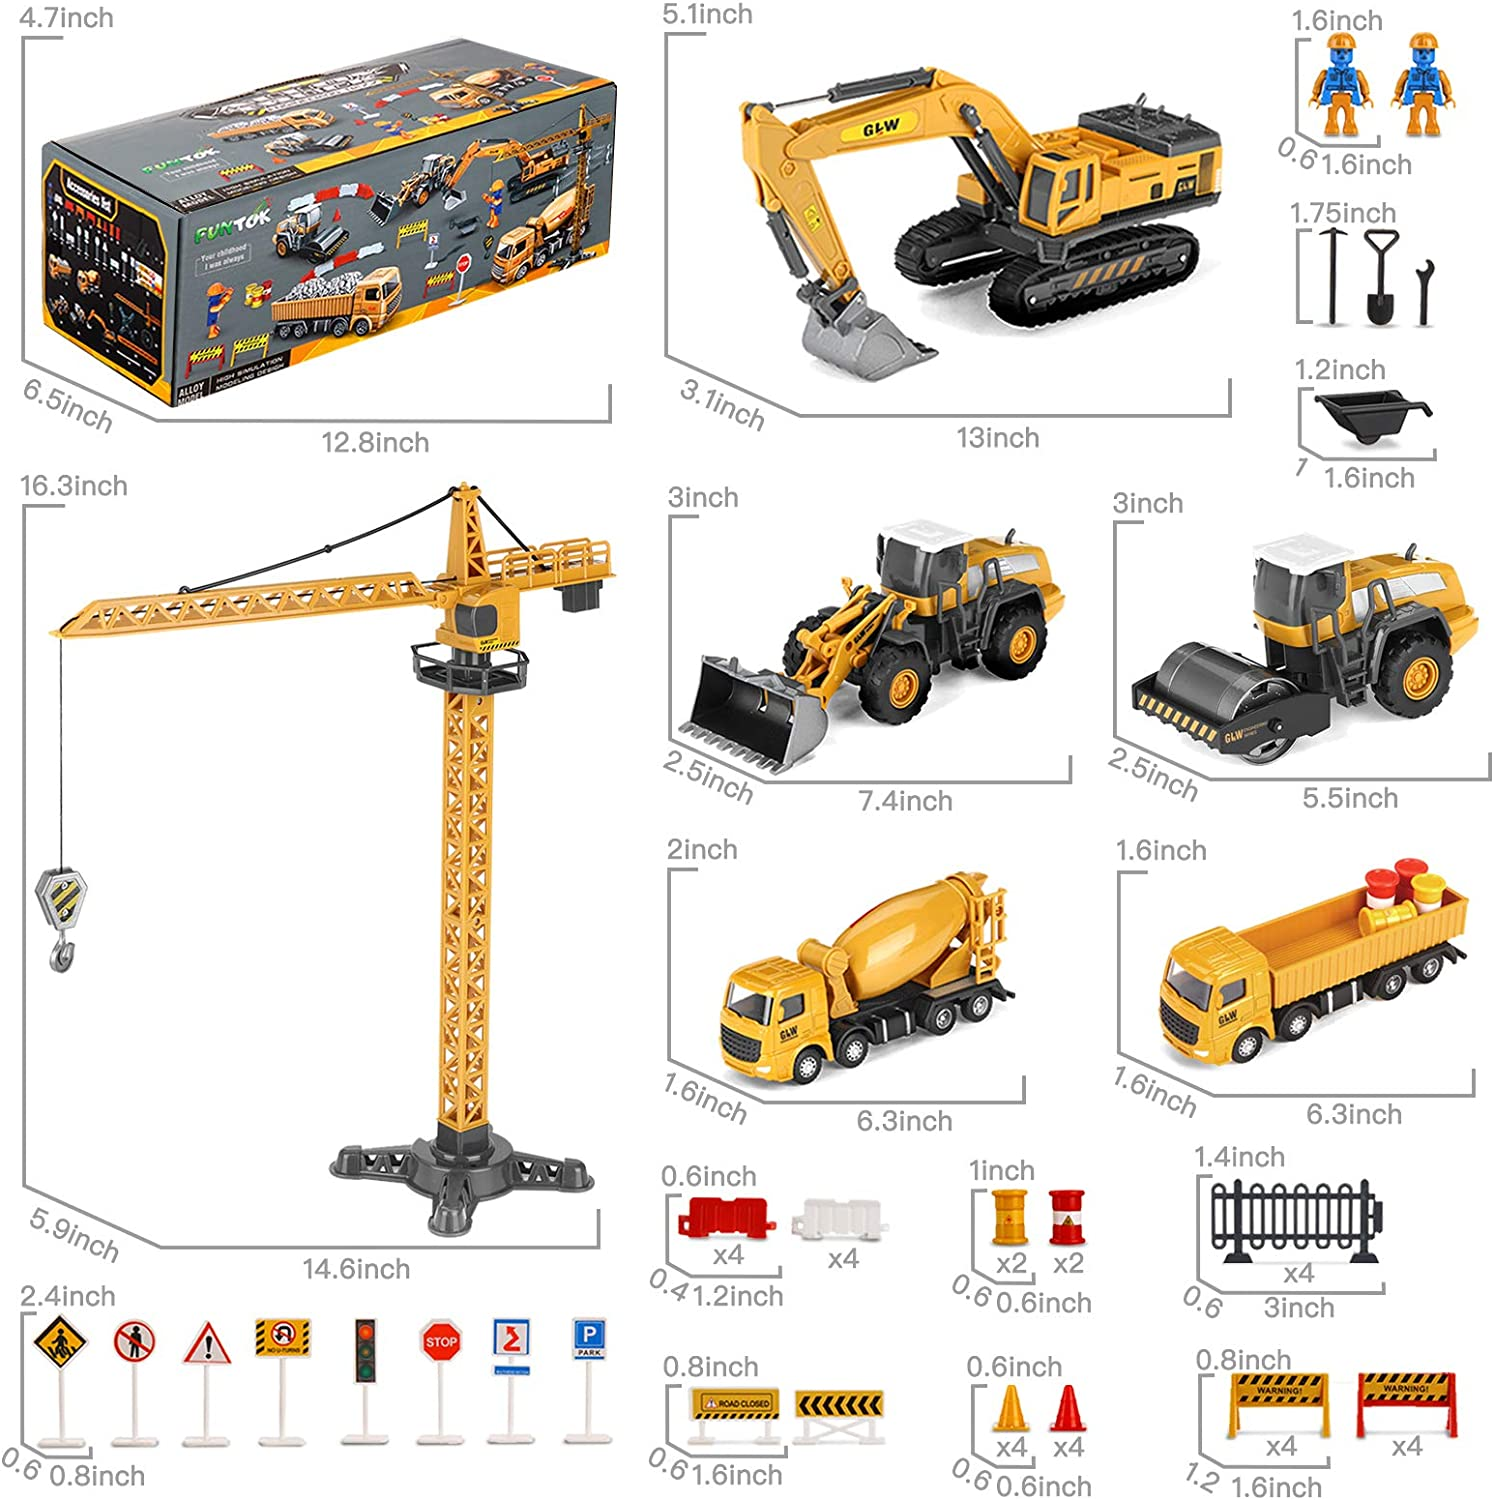 Crane Cement Kids Engineering Playset,Tractor Dump Trucks FUNTOK Construction Truck Car Toys Set Christmas Birthday Gifts for 3 4 5 6 Years Old Toddlers Boys Children Matchbox Digger Excavator